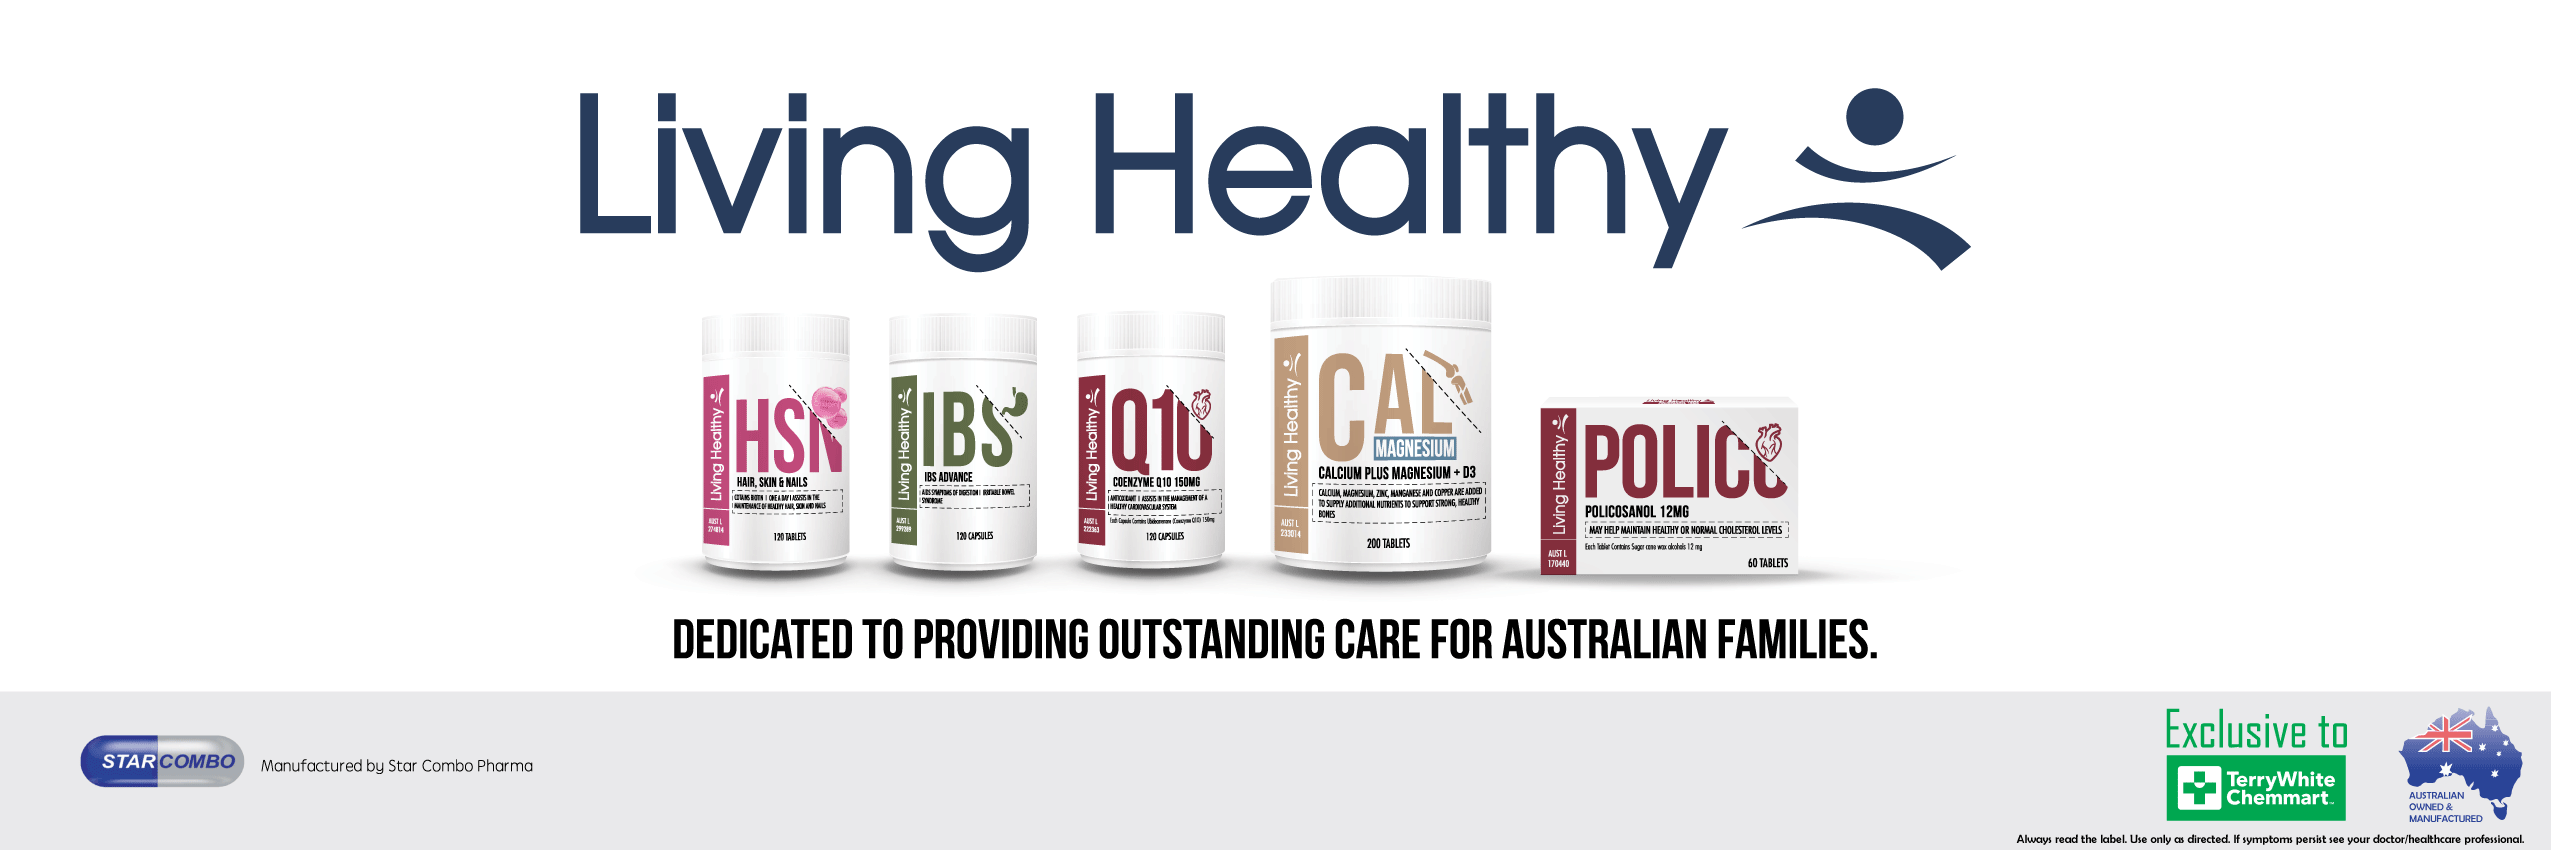 Living Healthy and Little Koala Products